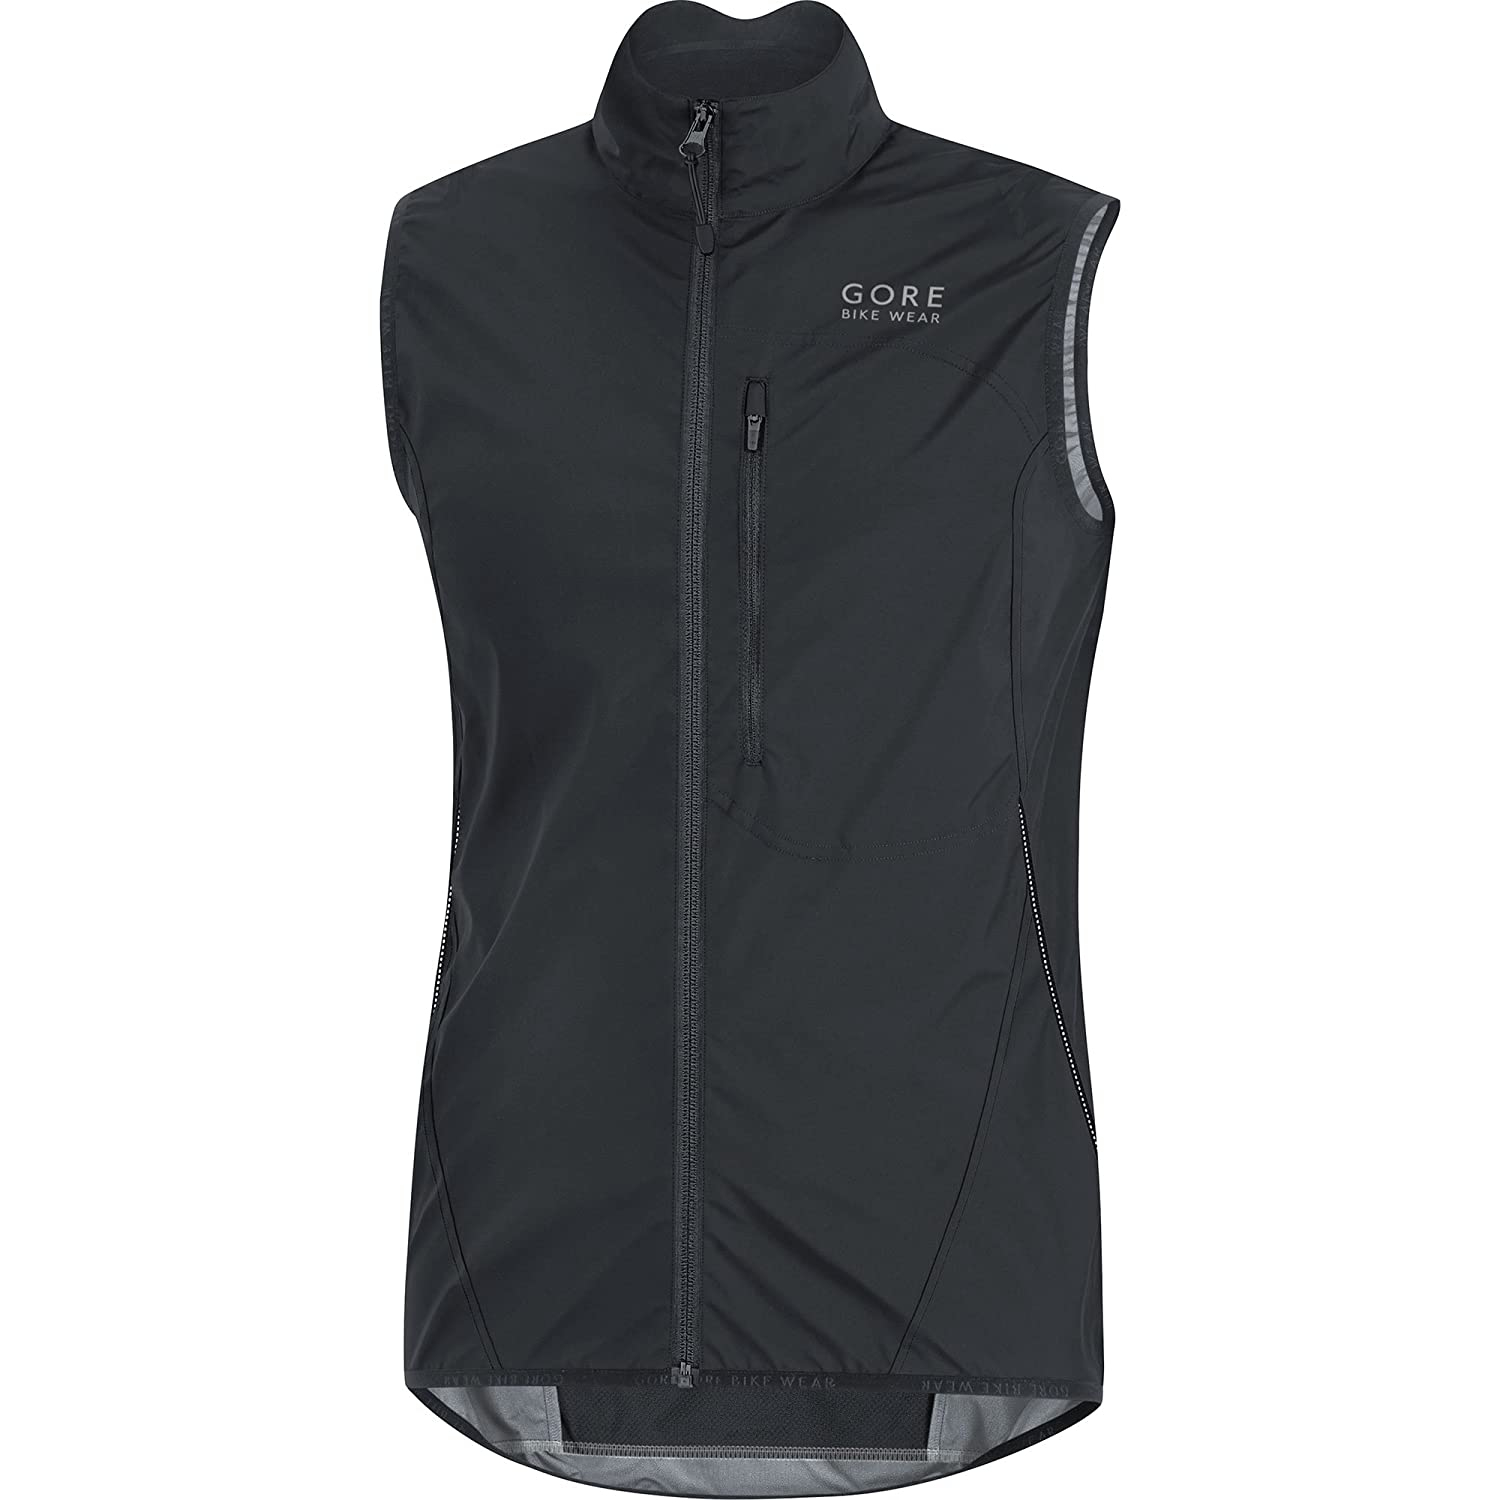 Gore Bike WEAR Men's Soft Shell Cycling Vest, Gore Windstopper, Vest, Size: L, Black, VWELMT